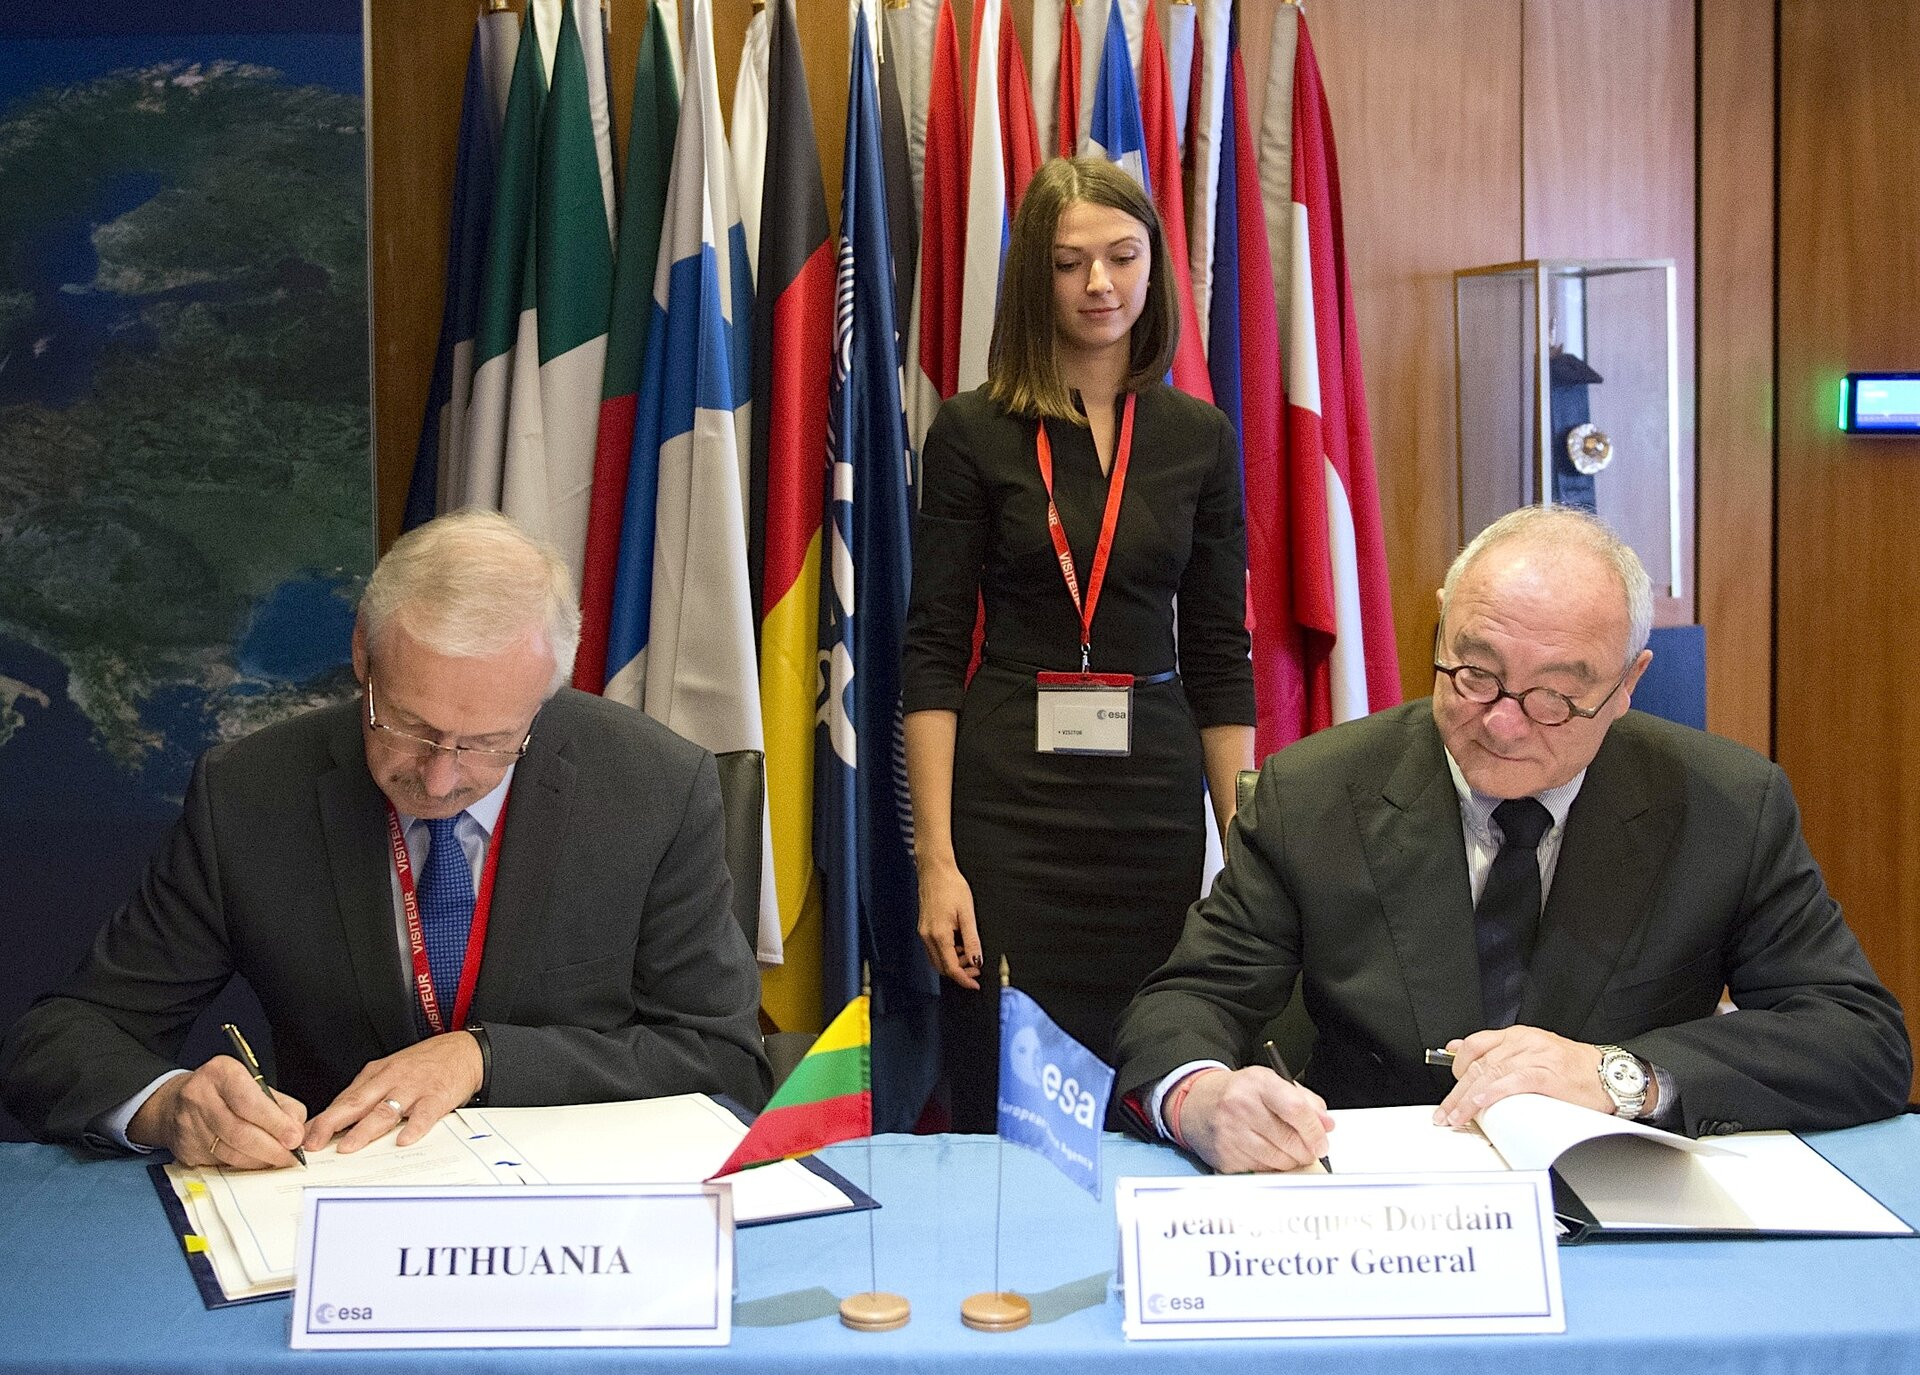 Signing of Lithuania ECS agreement